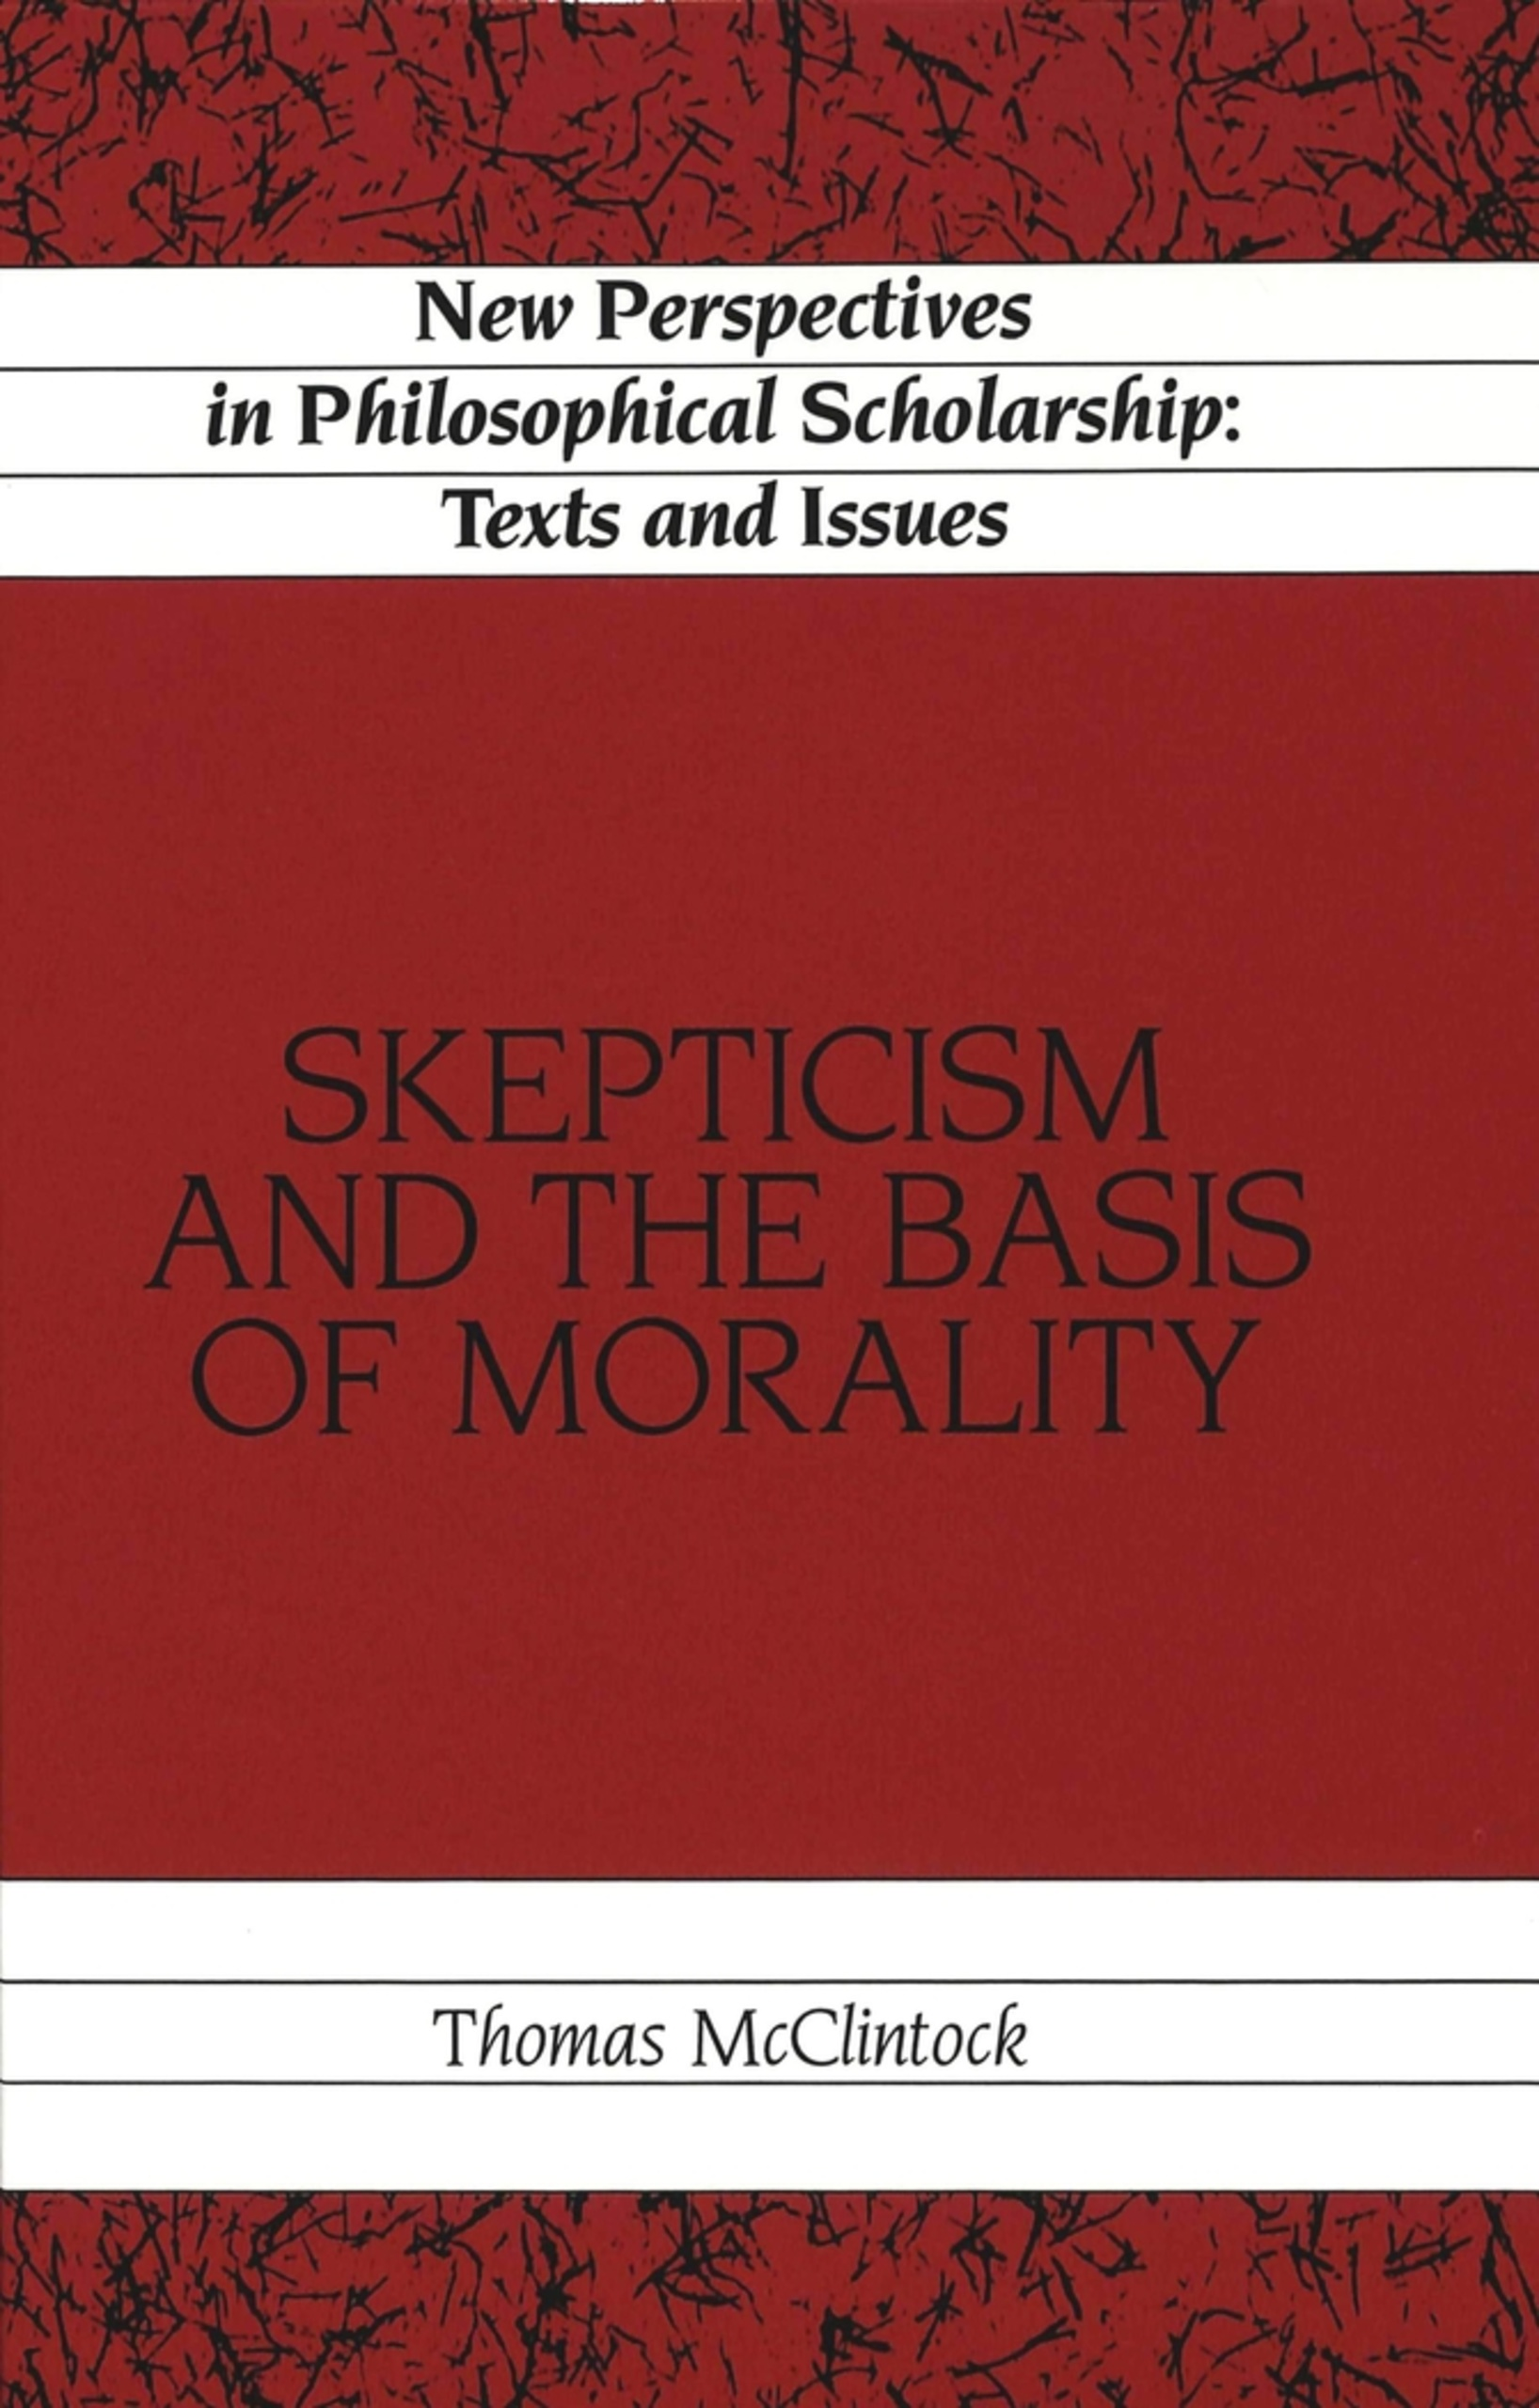 Title: Skepticism and the Basis of Morality